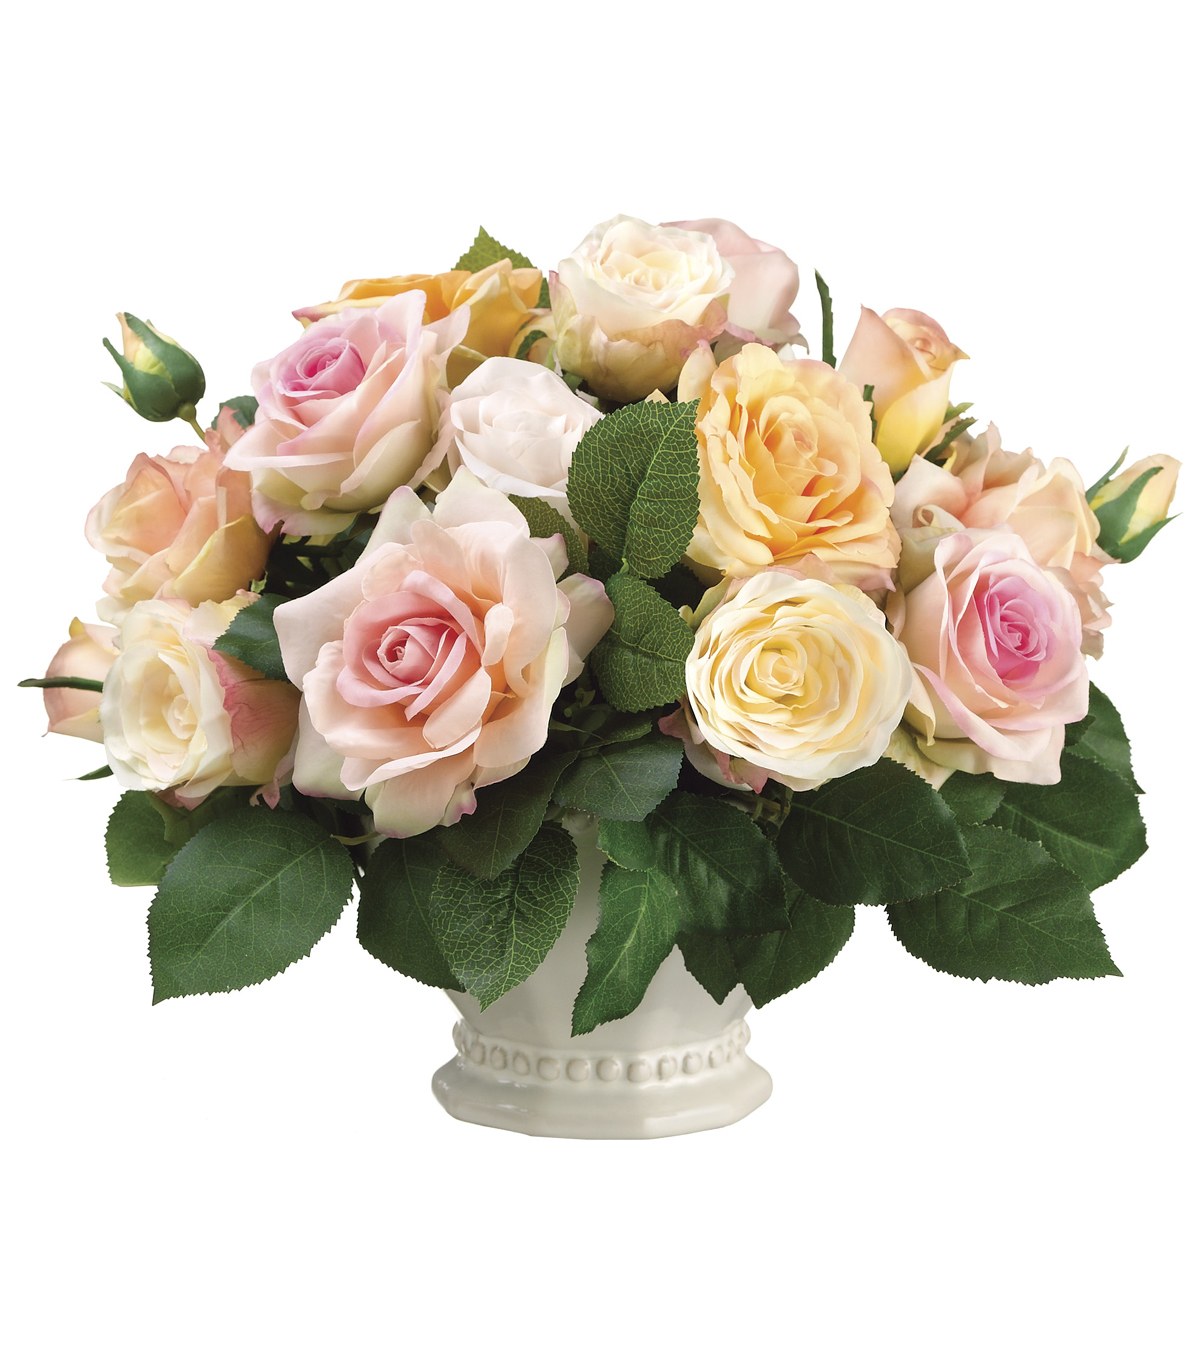 Bloom Room Luxe 12'' Rose In Provencal Vase-Pink